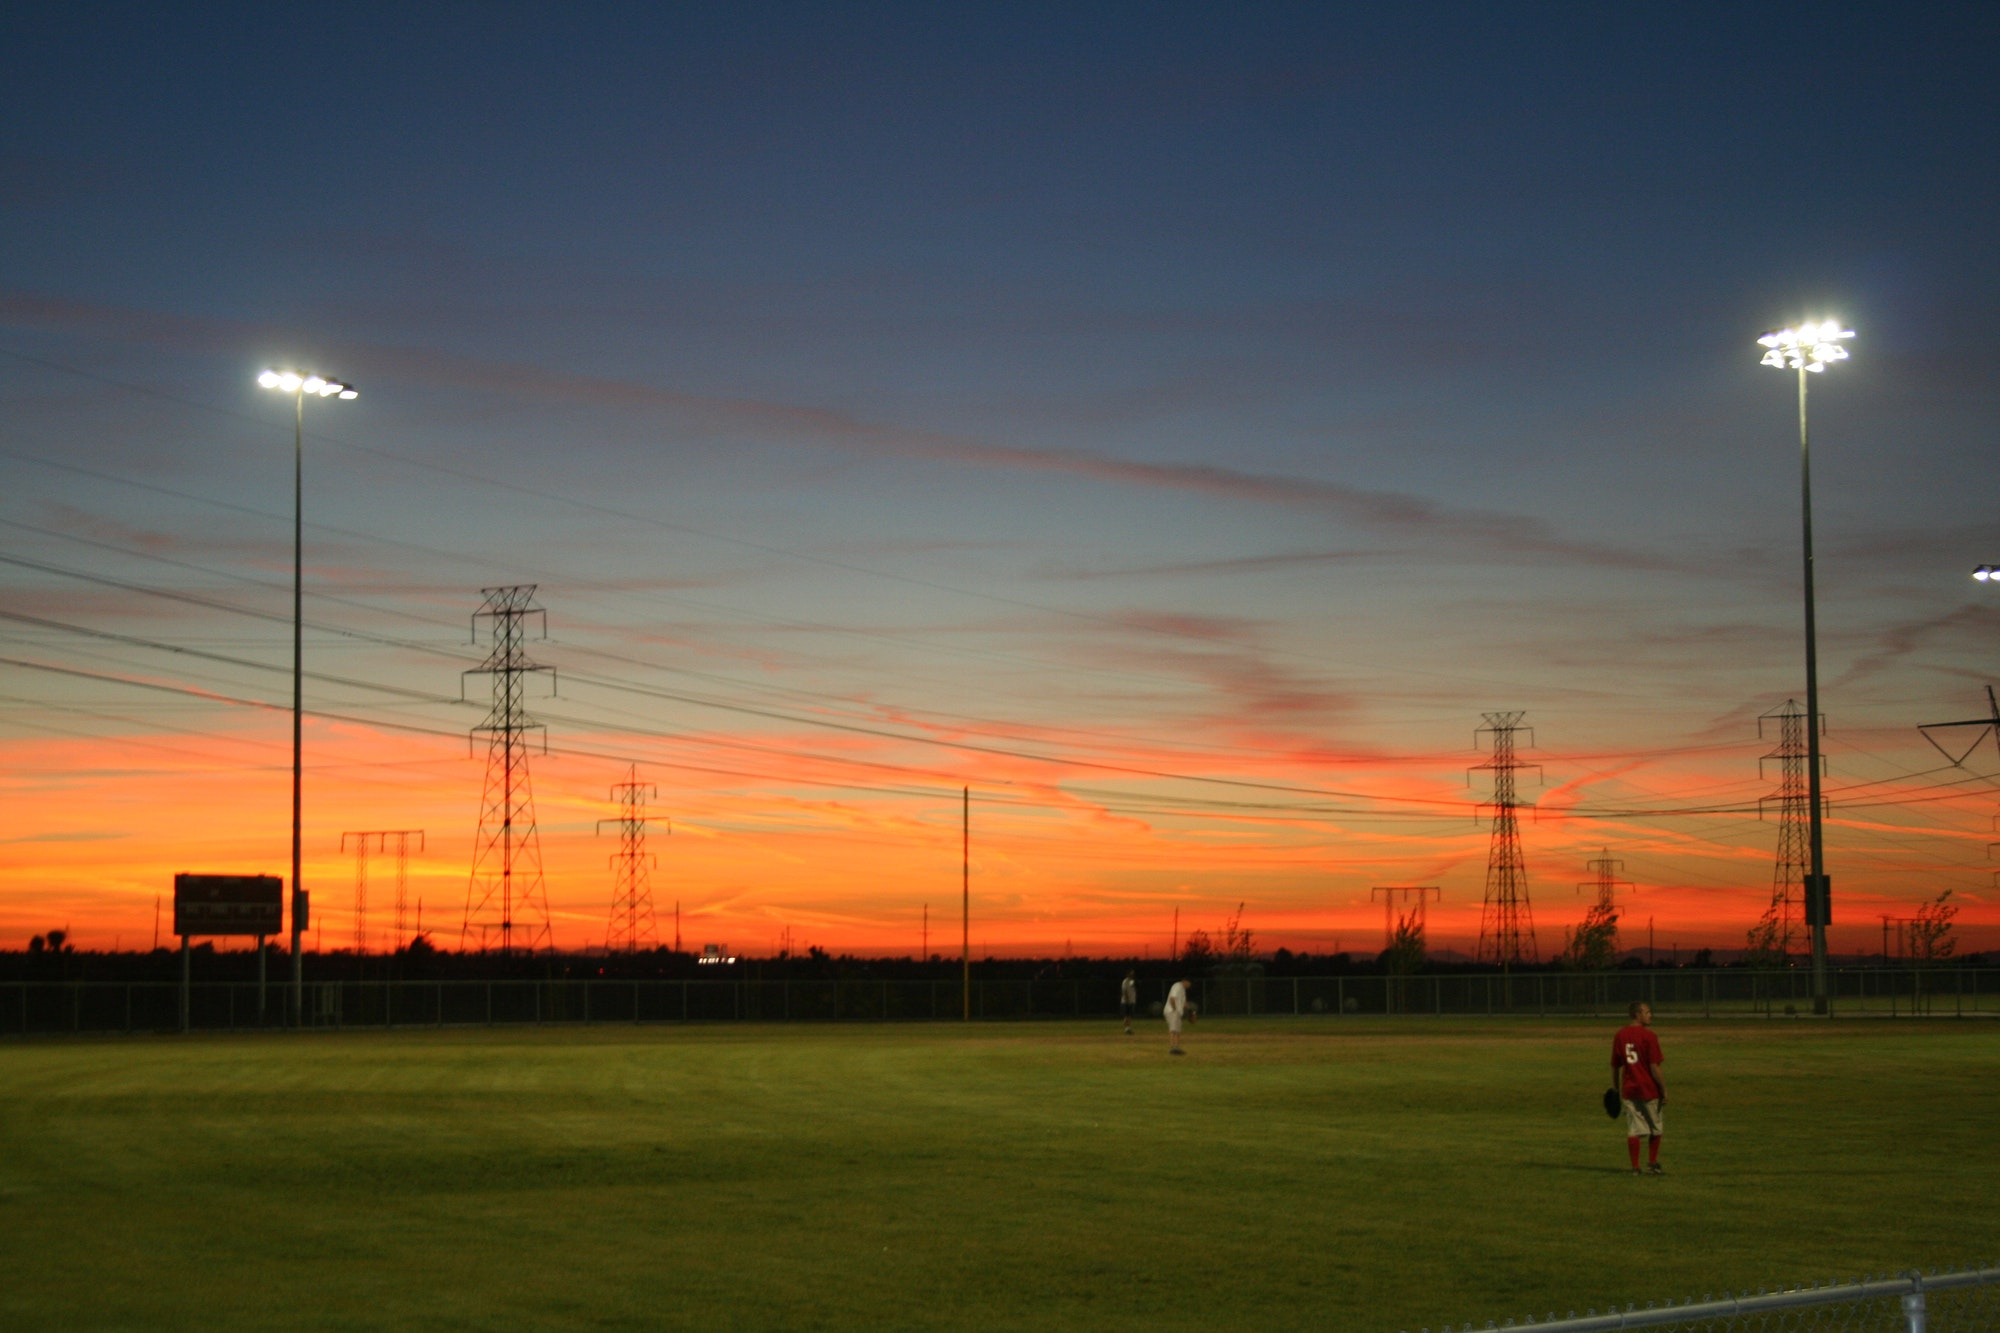 Sunset above baseball field at Hesperia Community Park